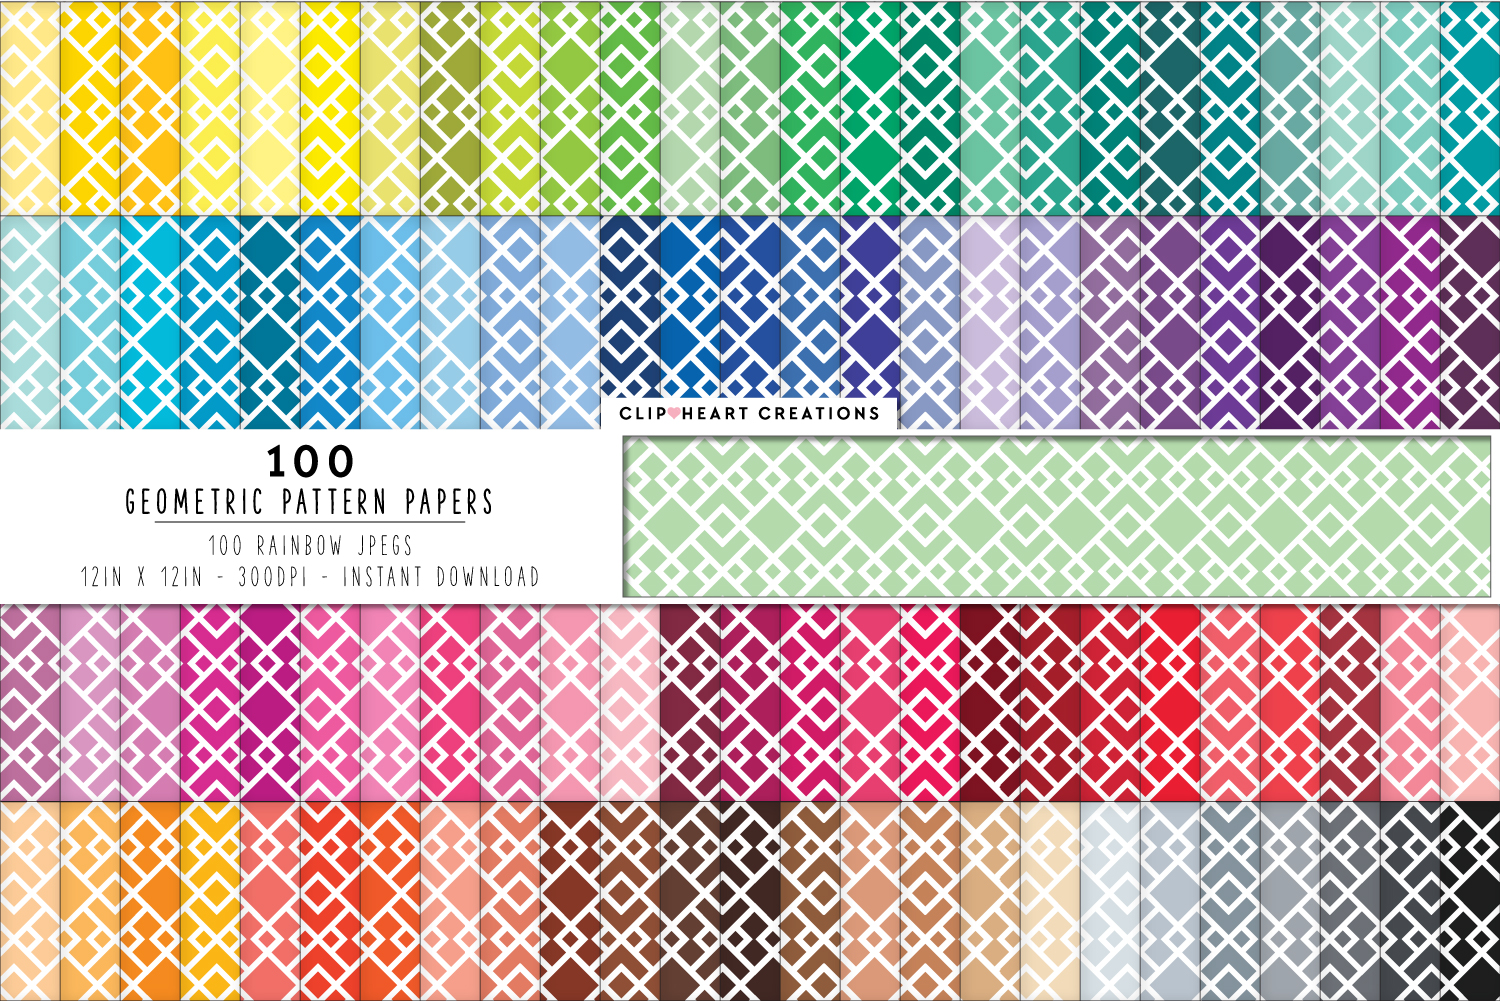 Download Free 100 Geometric Pattern Papers Graphic By Clipheartcreations Creative Fabrica for Cricut Explore, Silhouette and other cutting machines.